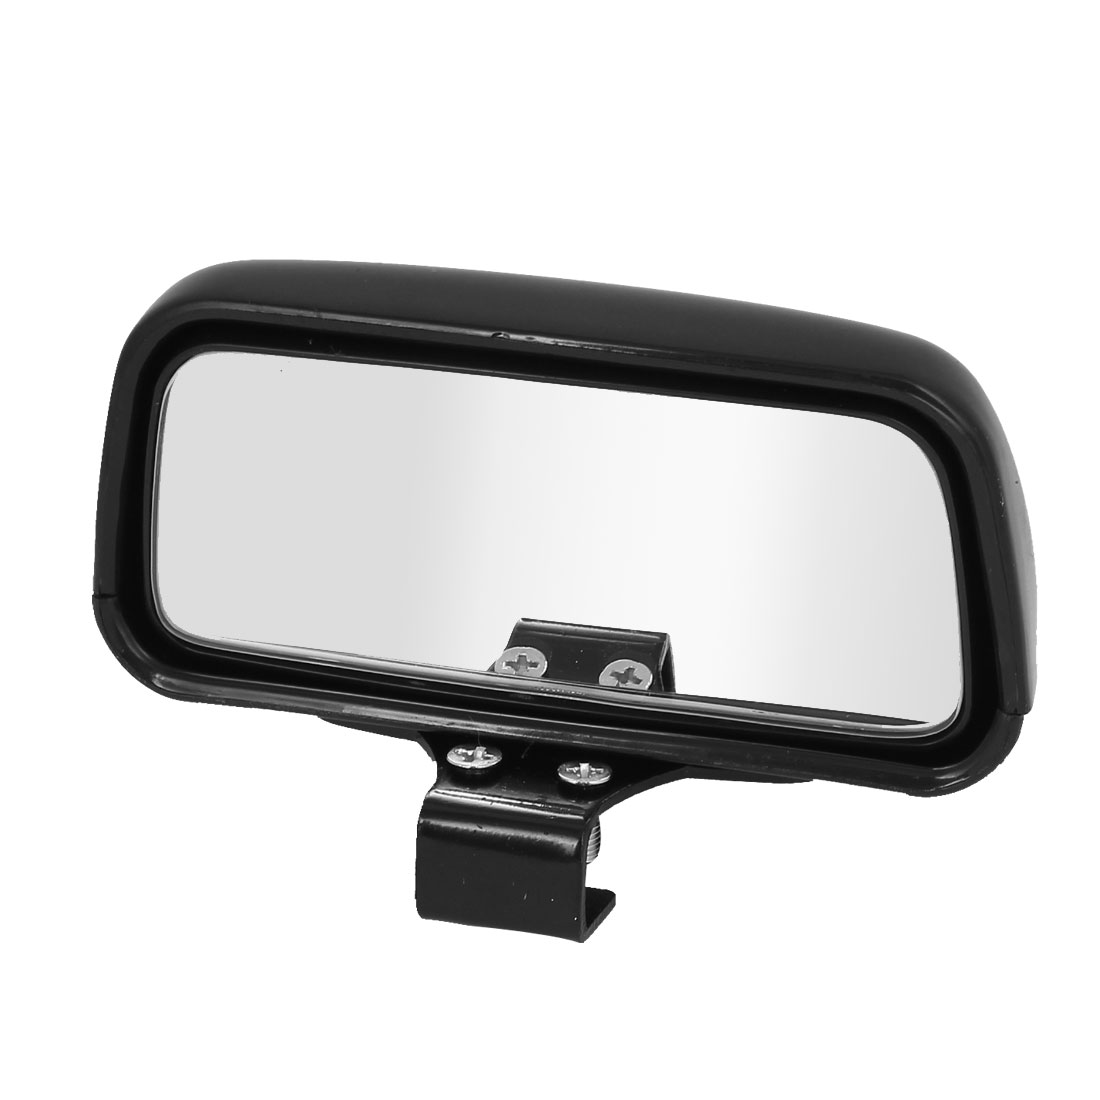 Car Vehicle Rectangle Wide Angle Convex Blind Spot Mirror Black 11 x 7cm